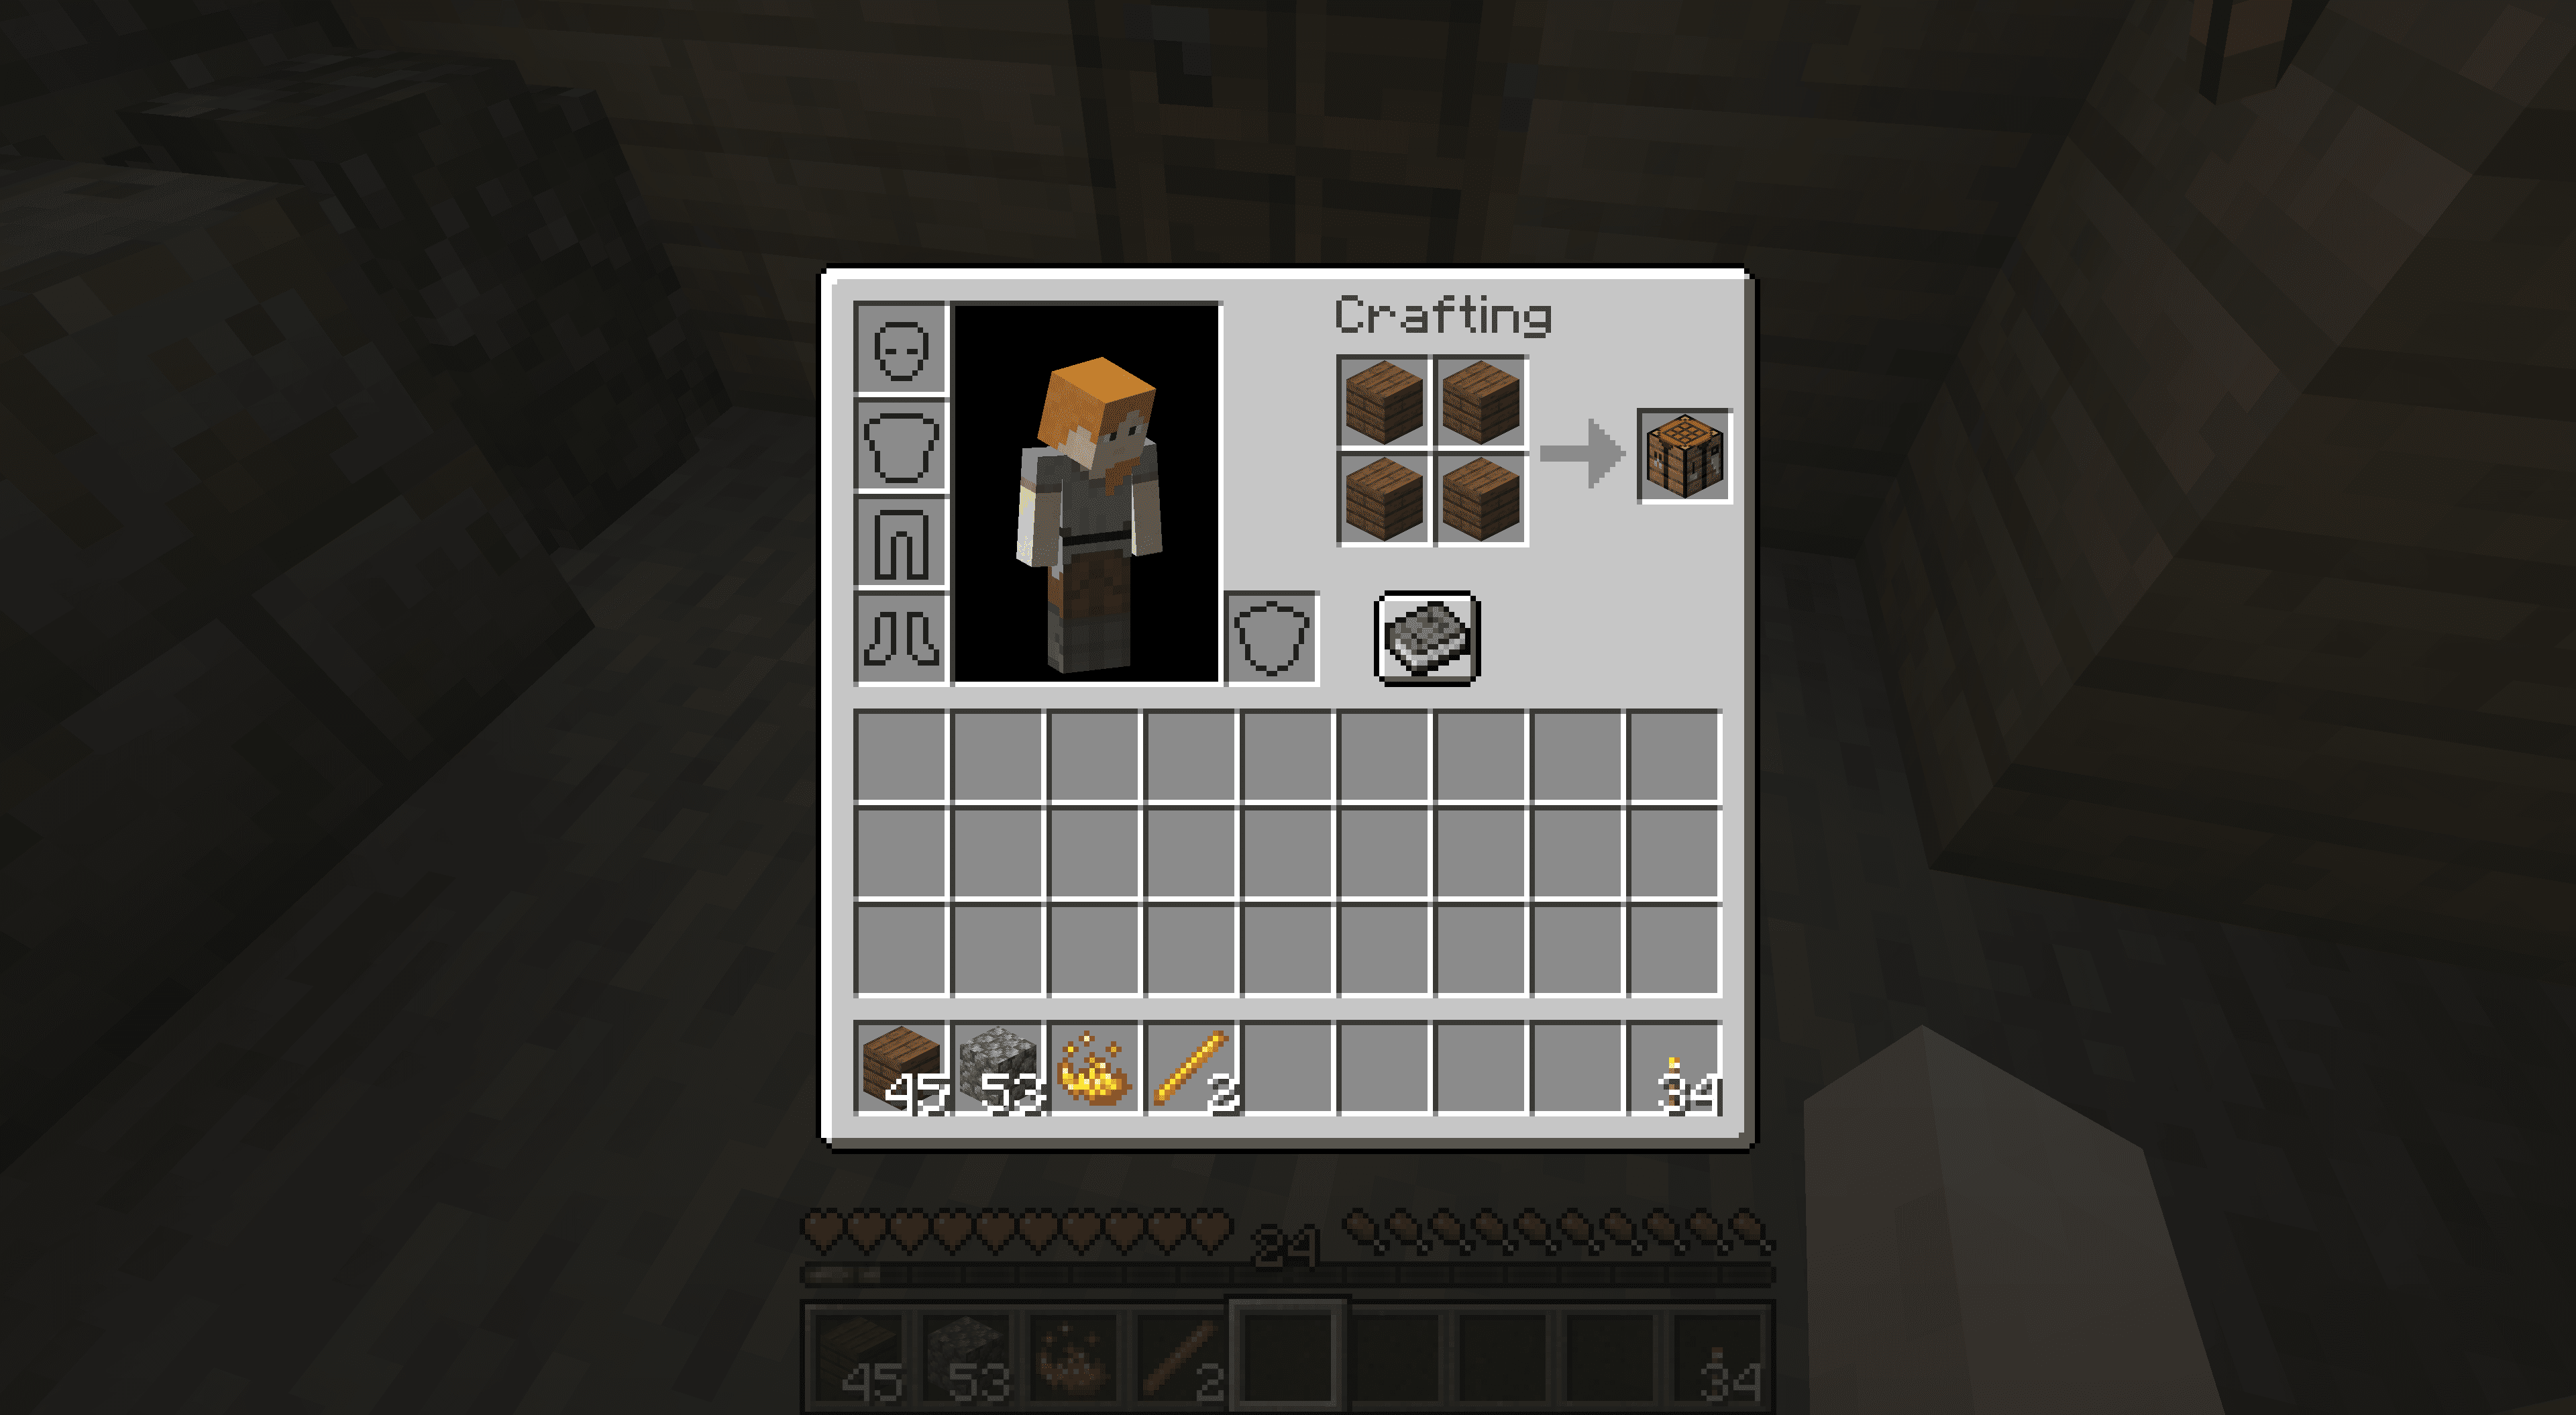 A crafting table in Minecraft.